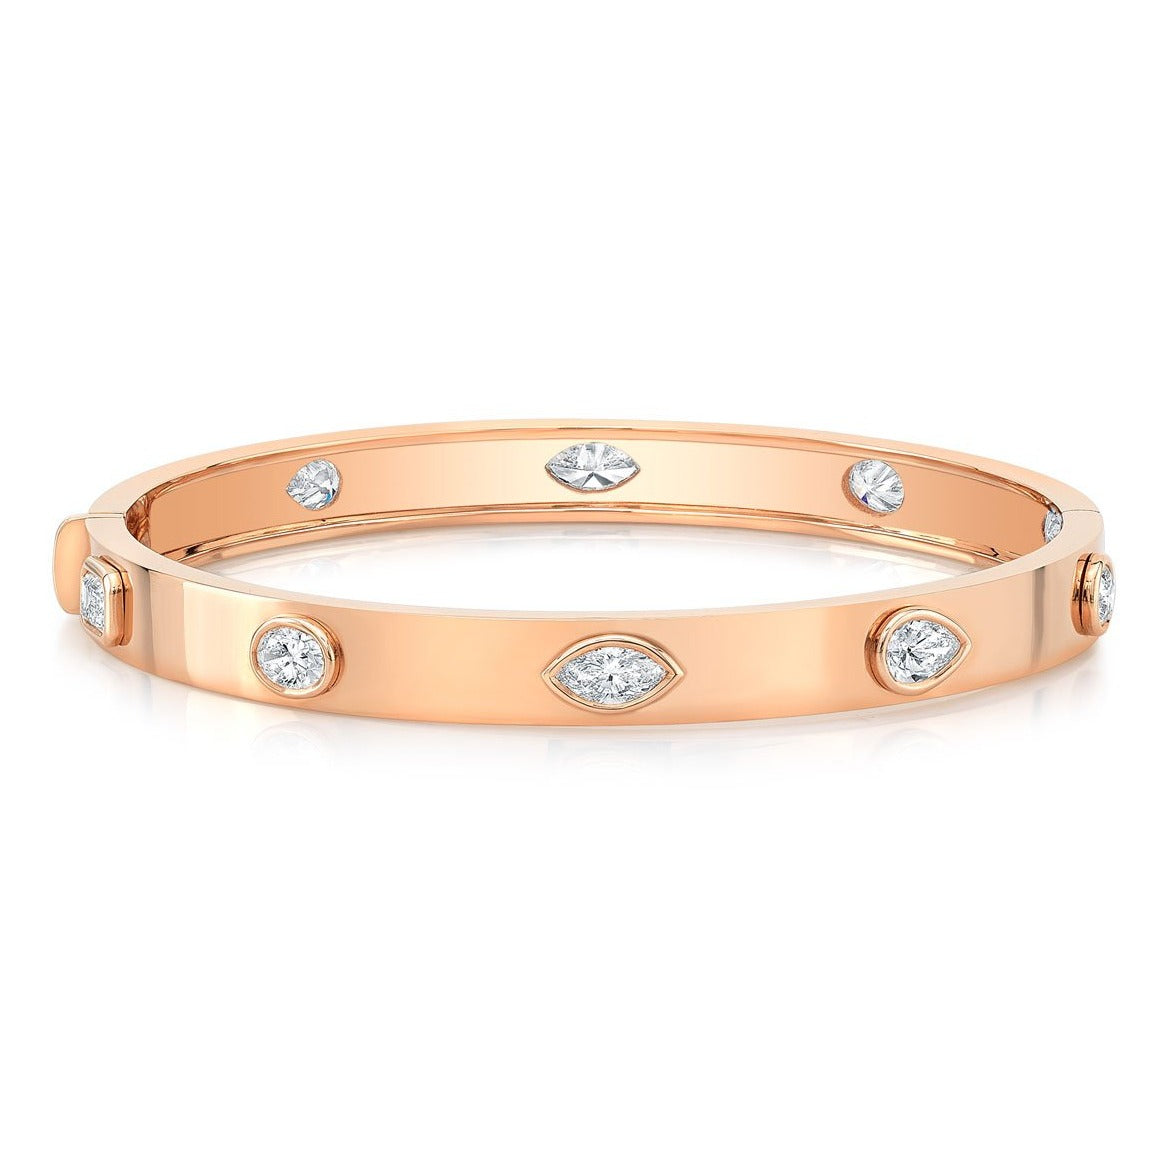 Fancy Shaped Diamond Bangle